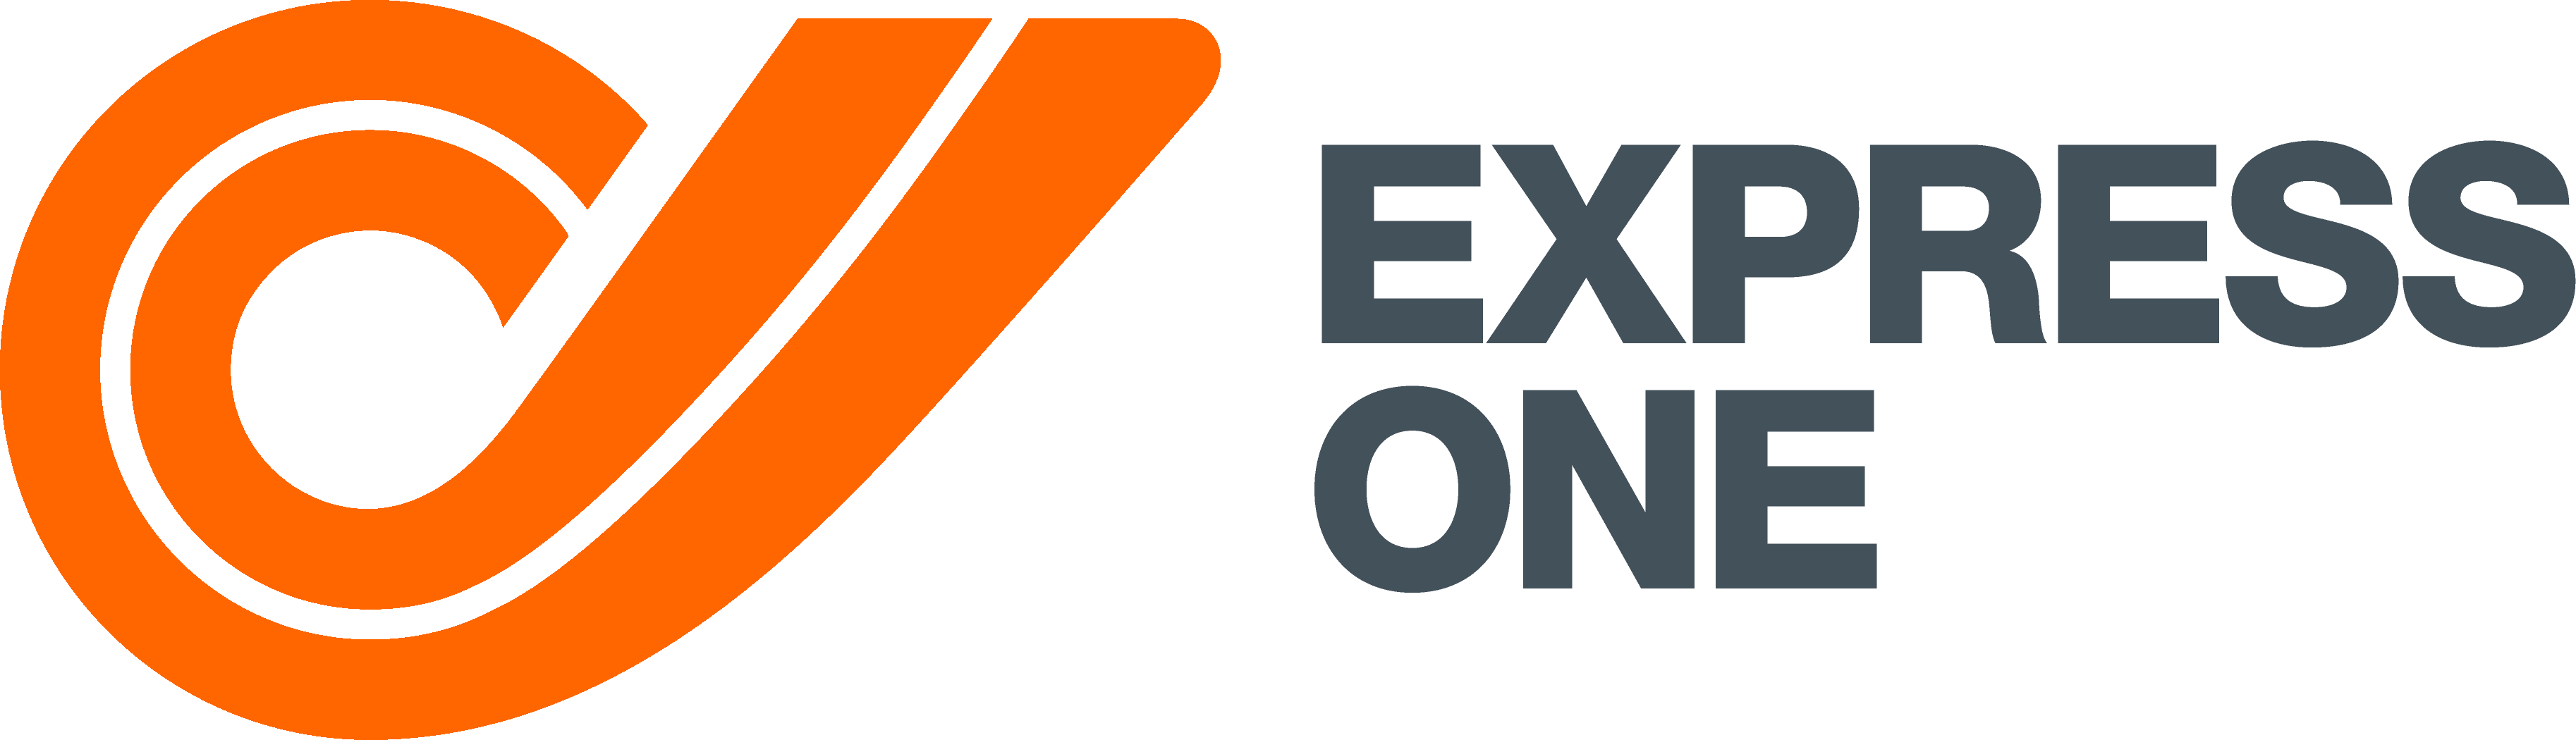 express one, express logo, brillcosmetix logo, brillcosmetix express one